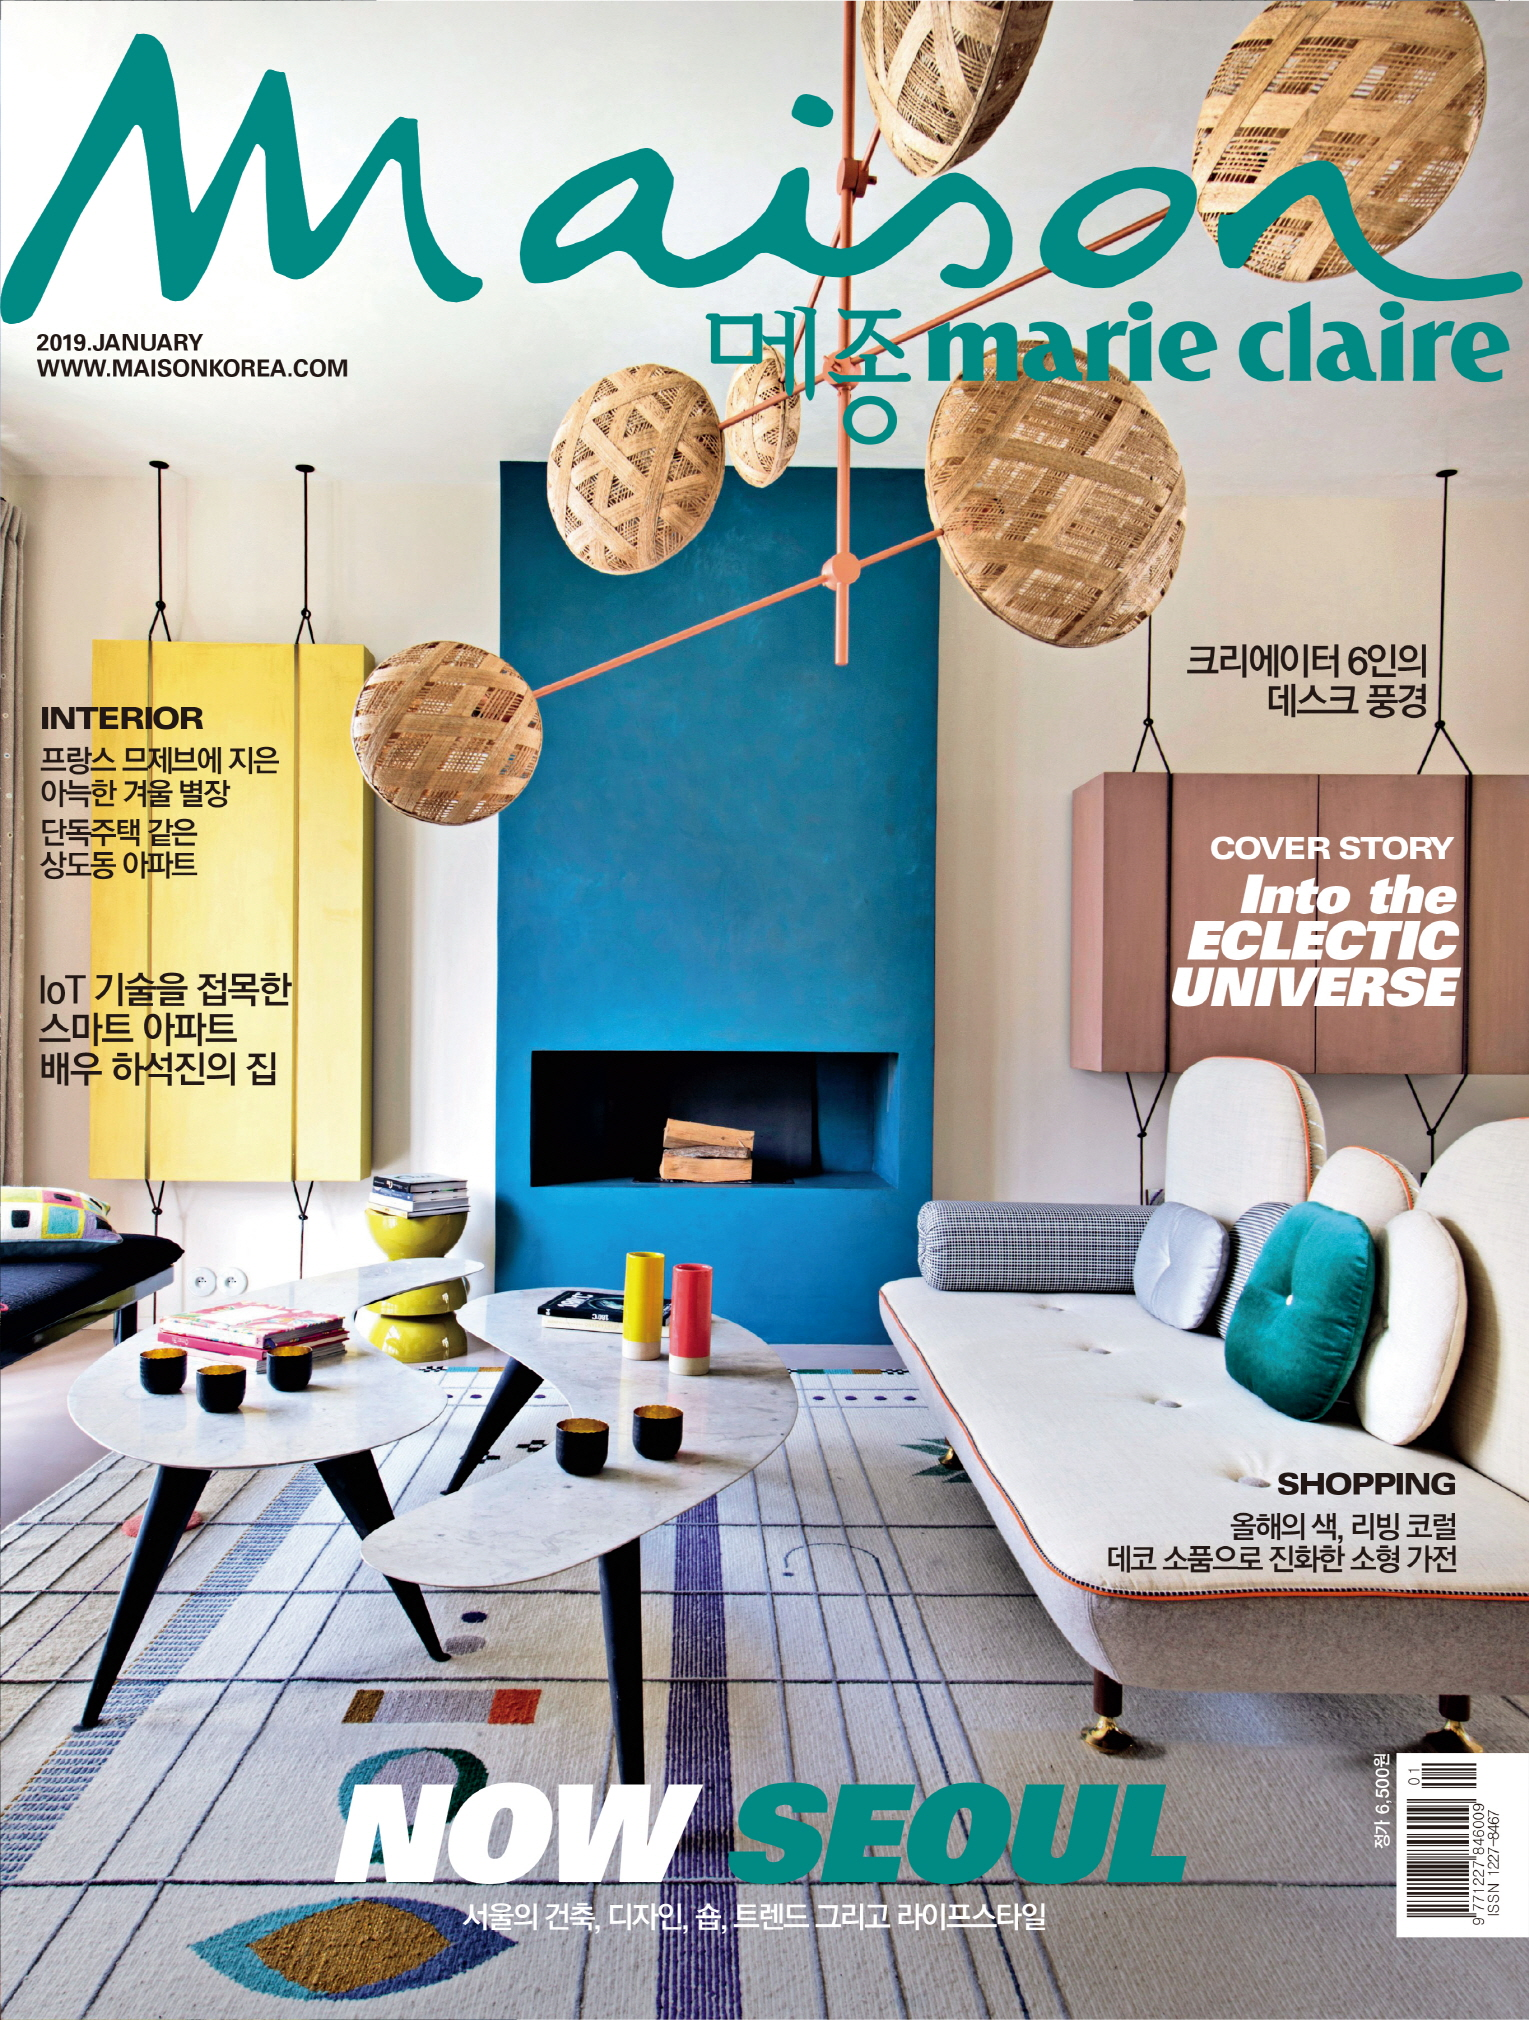 Maison Korea (2019.01)_Cover.jpg